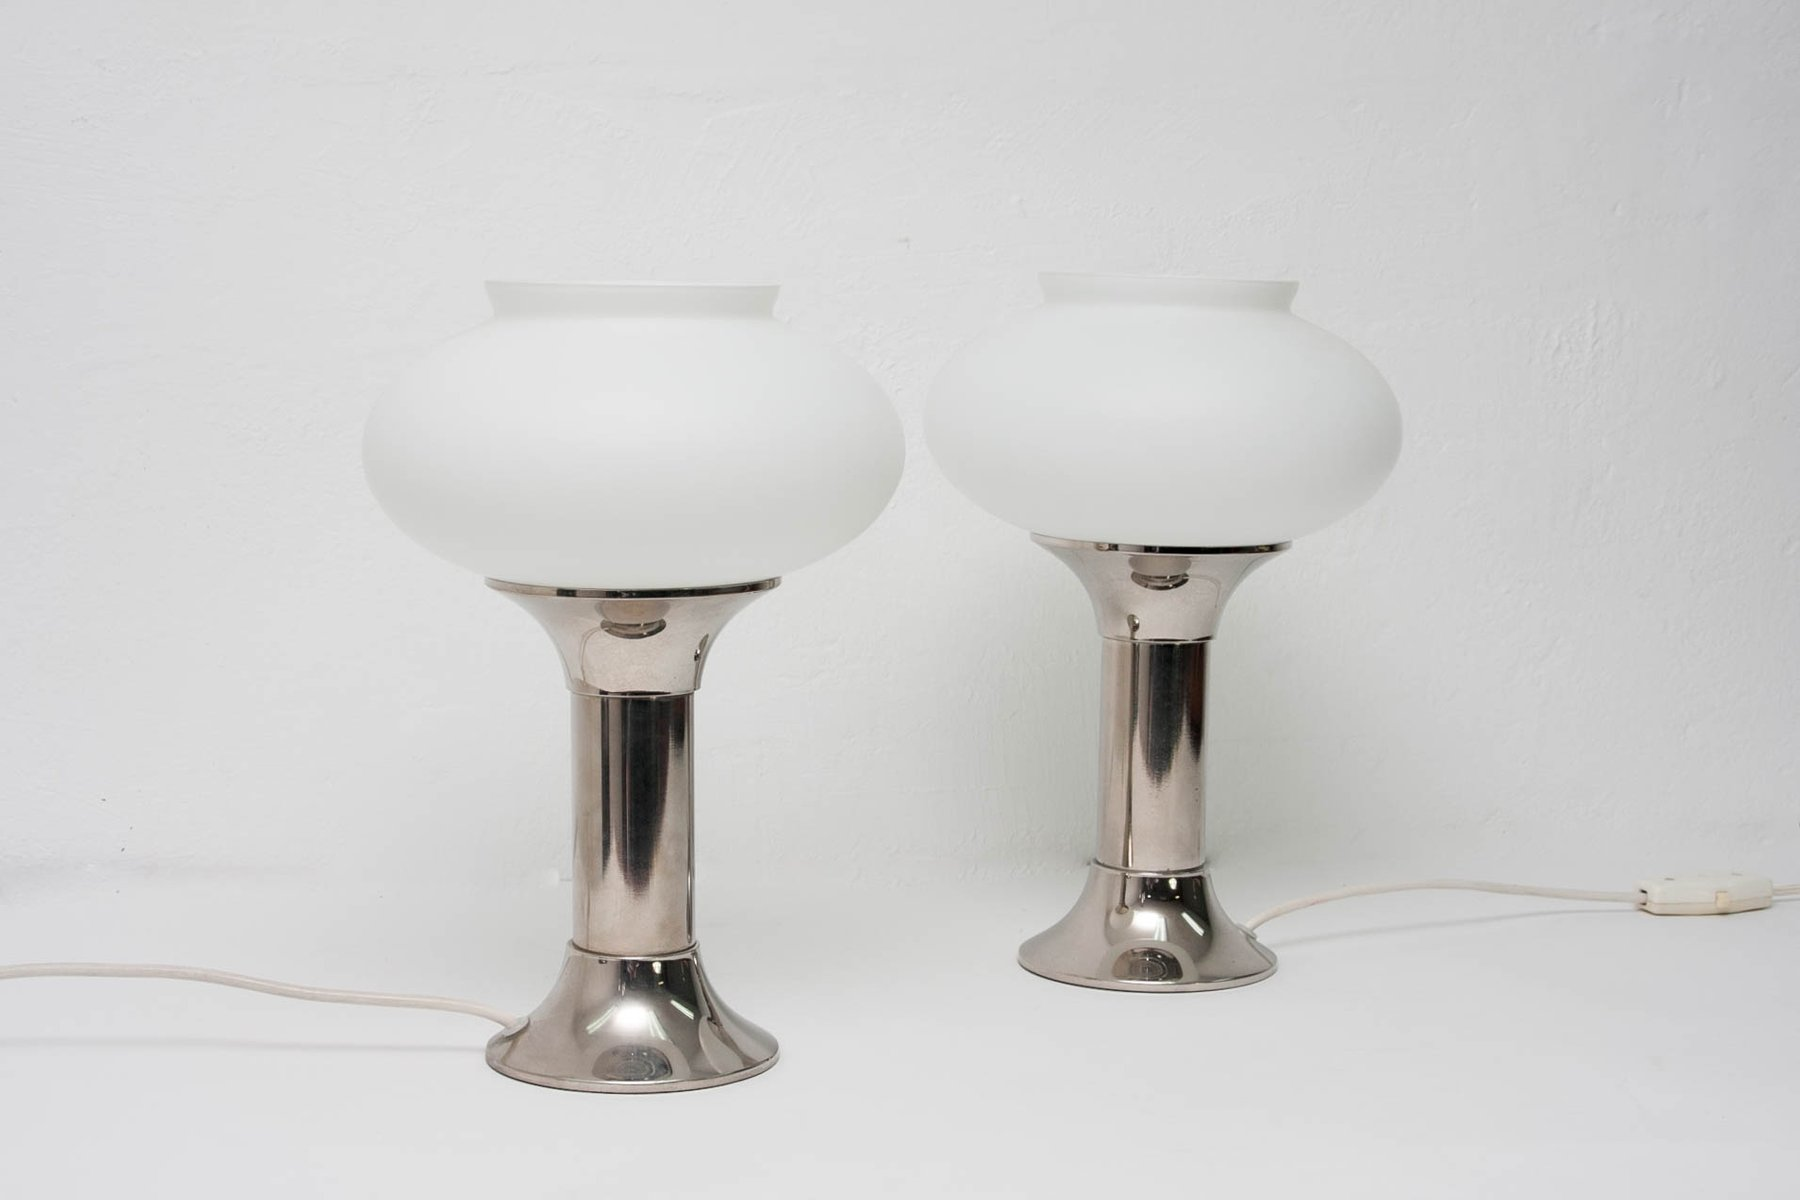 Mid century table lamps from veb narva set of 2 for sale at pamono mid century table lamps from veb narva set of 2 geotapseo Gallery